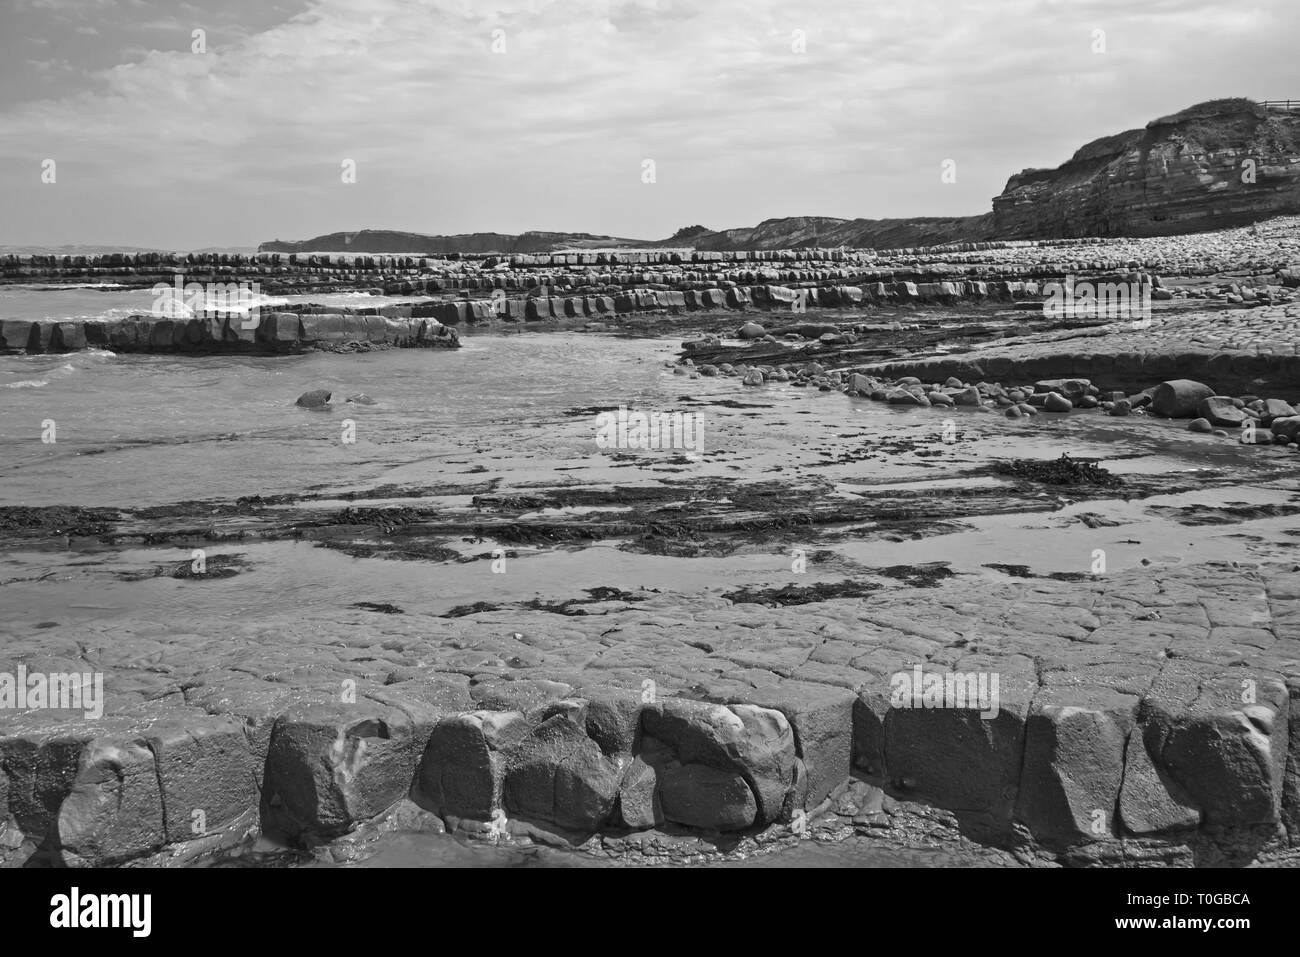 The exposed ledges and rock strata along the foreshore on the Bristol Channel coast at Kilve in Somerset UK at low tide - Stock Image